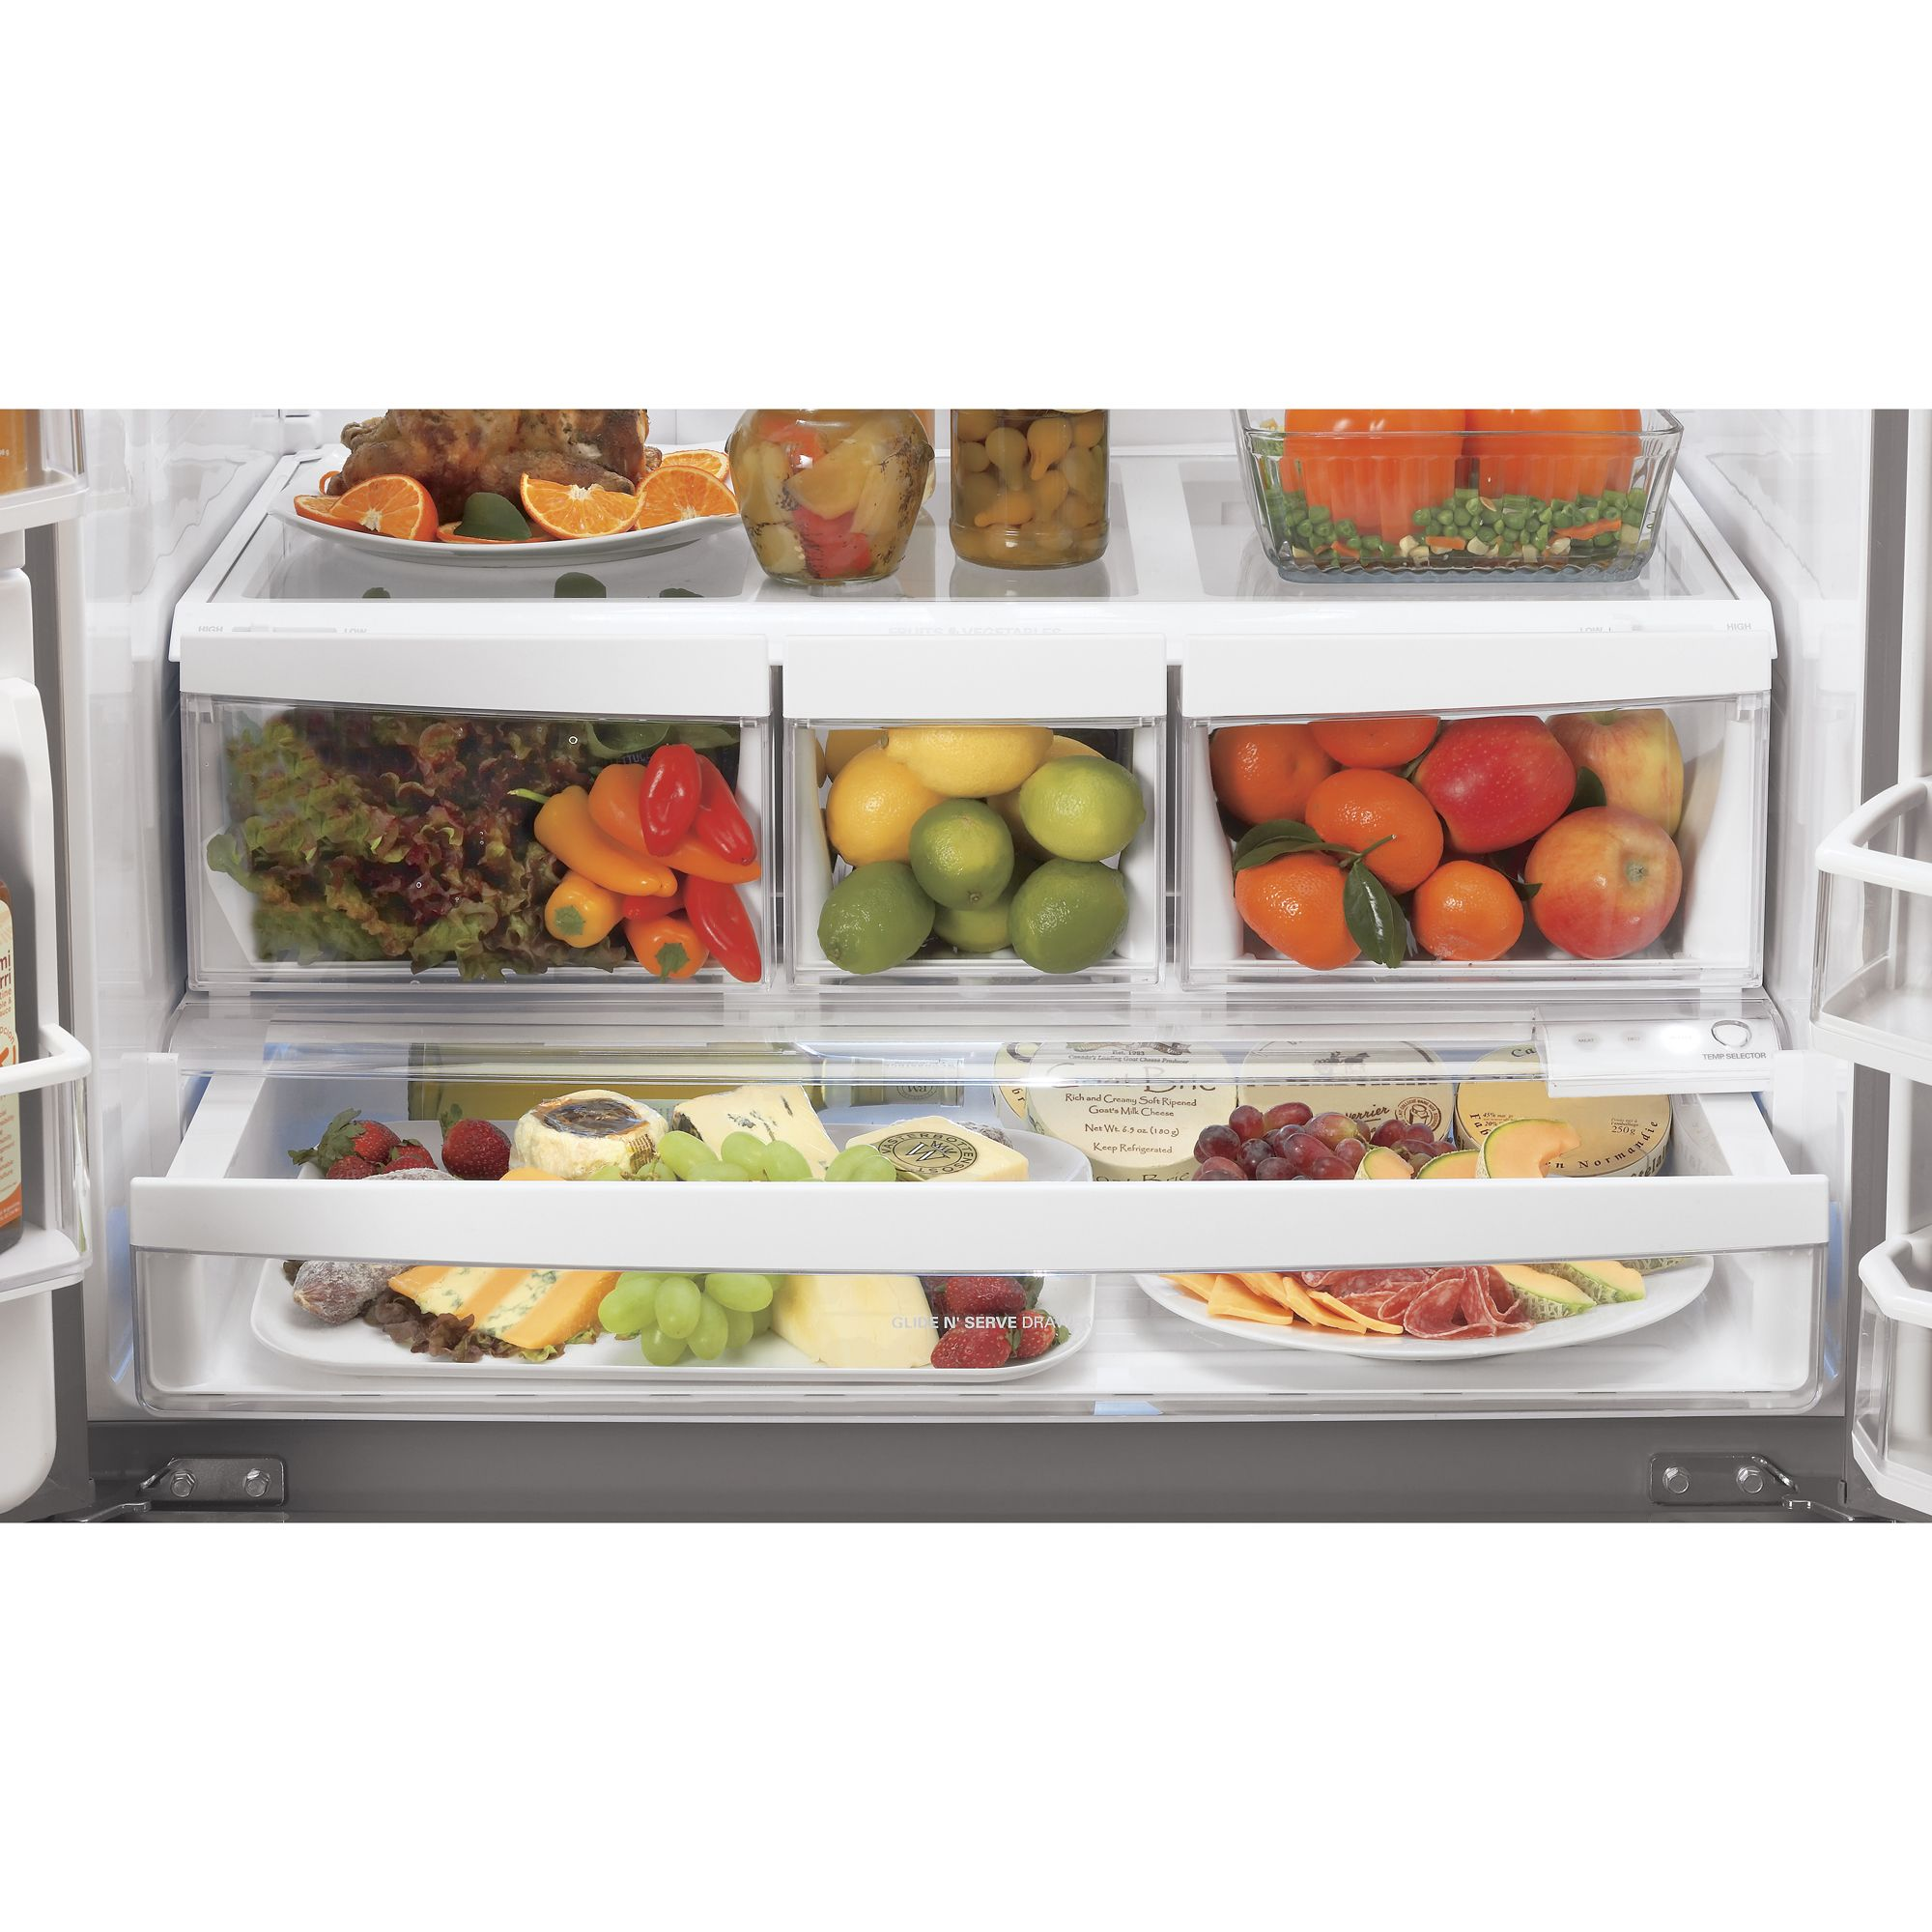 LG 27.6 cu. ft.  French Door Bottom-Freezer Refrigerator